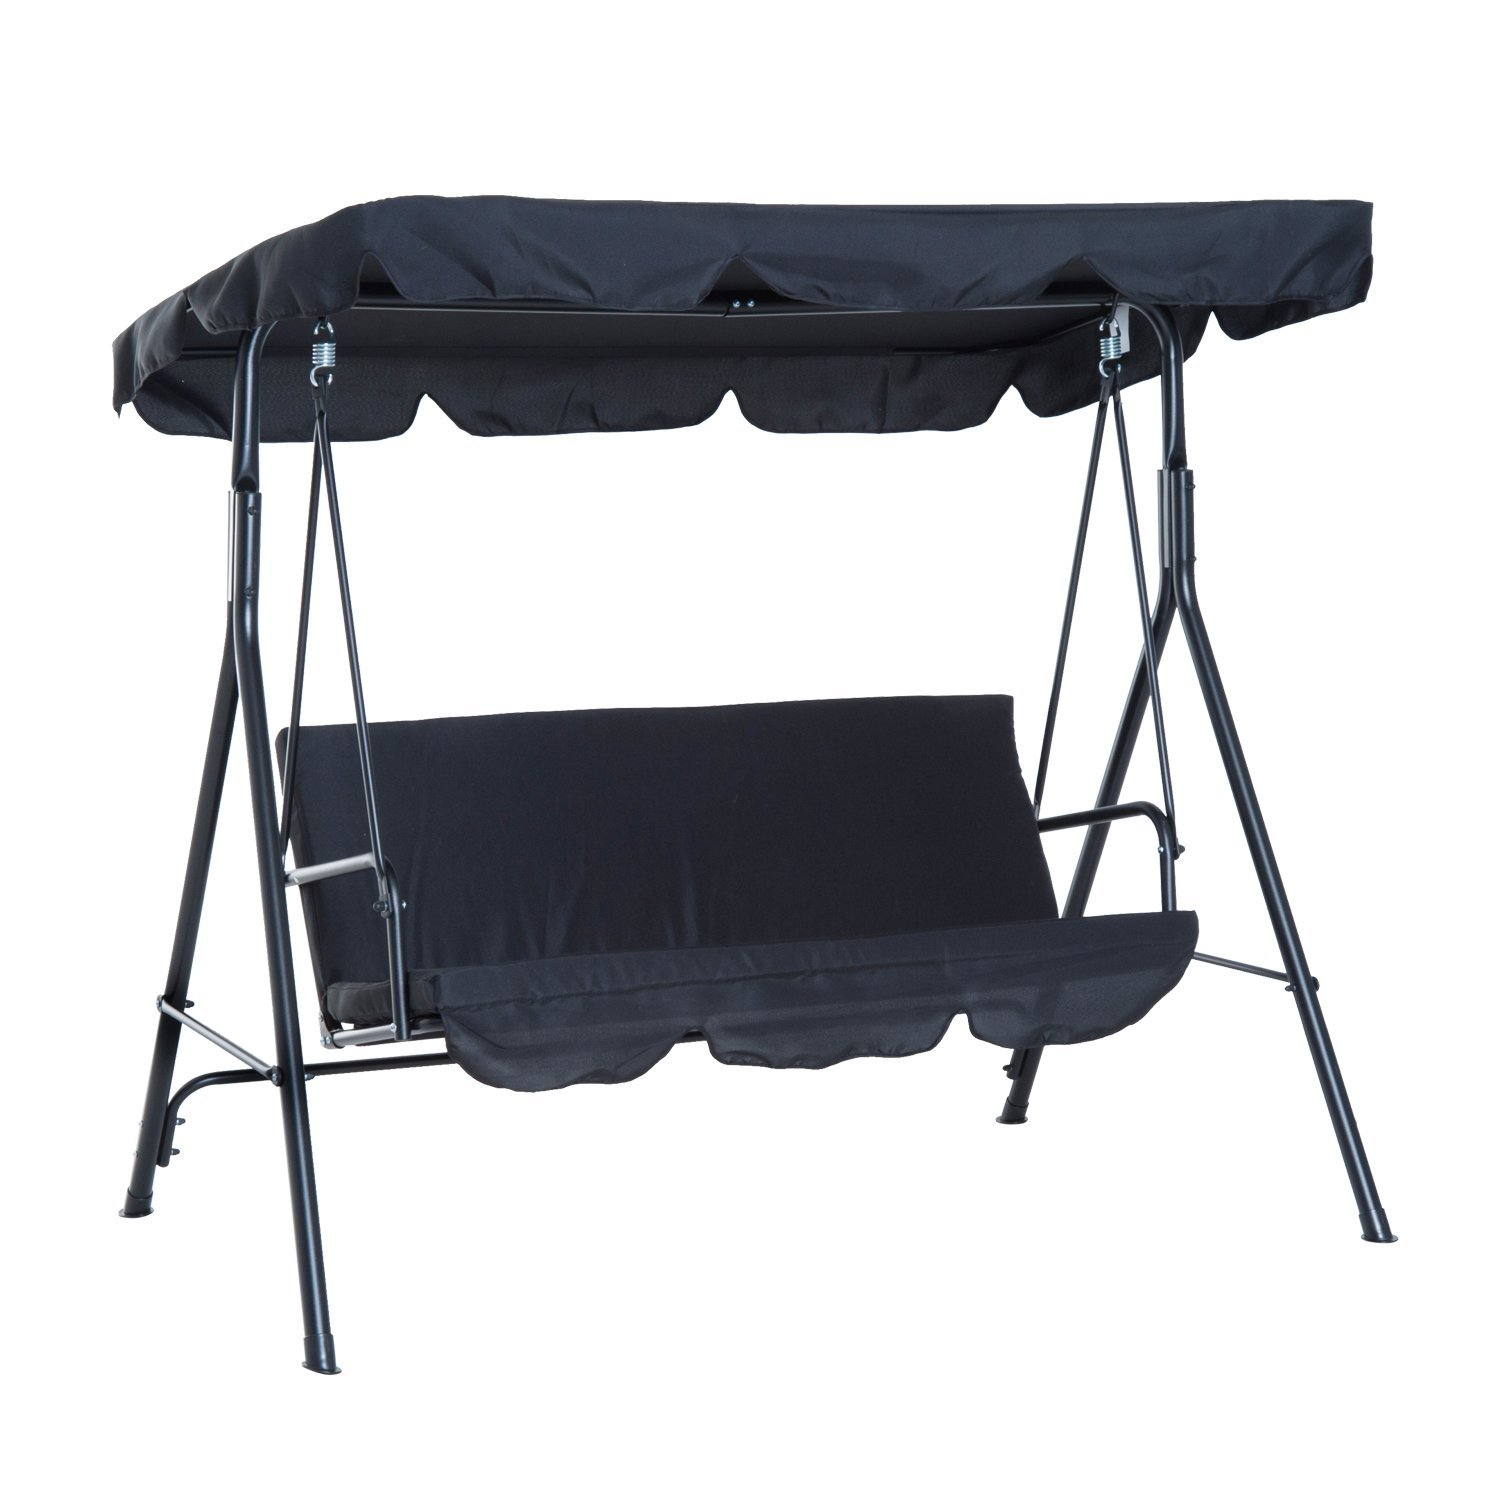 Outsunny Rocking 3 Seater With Sunshield Sunshade Tilting Steel Garden 172 × 110 × 152 Cm Black